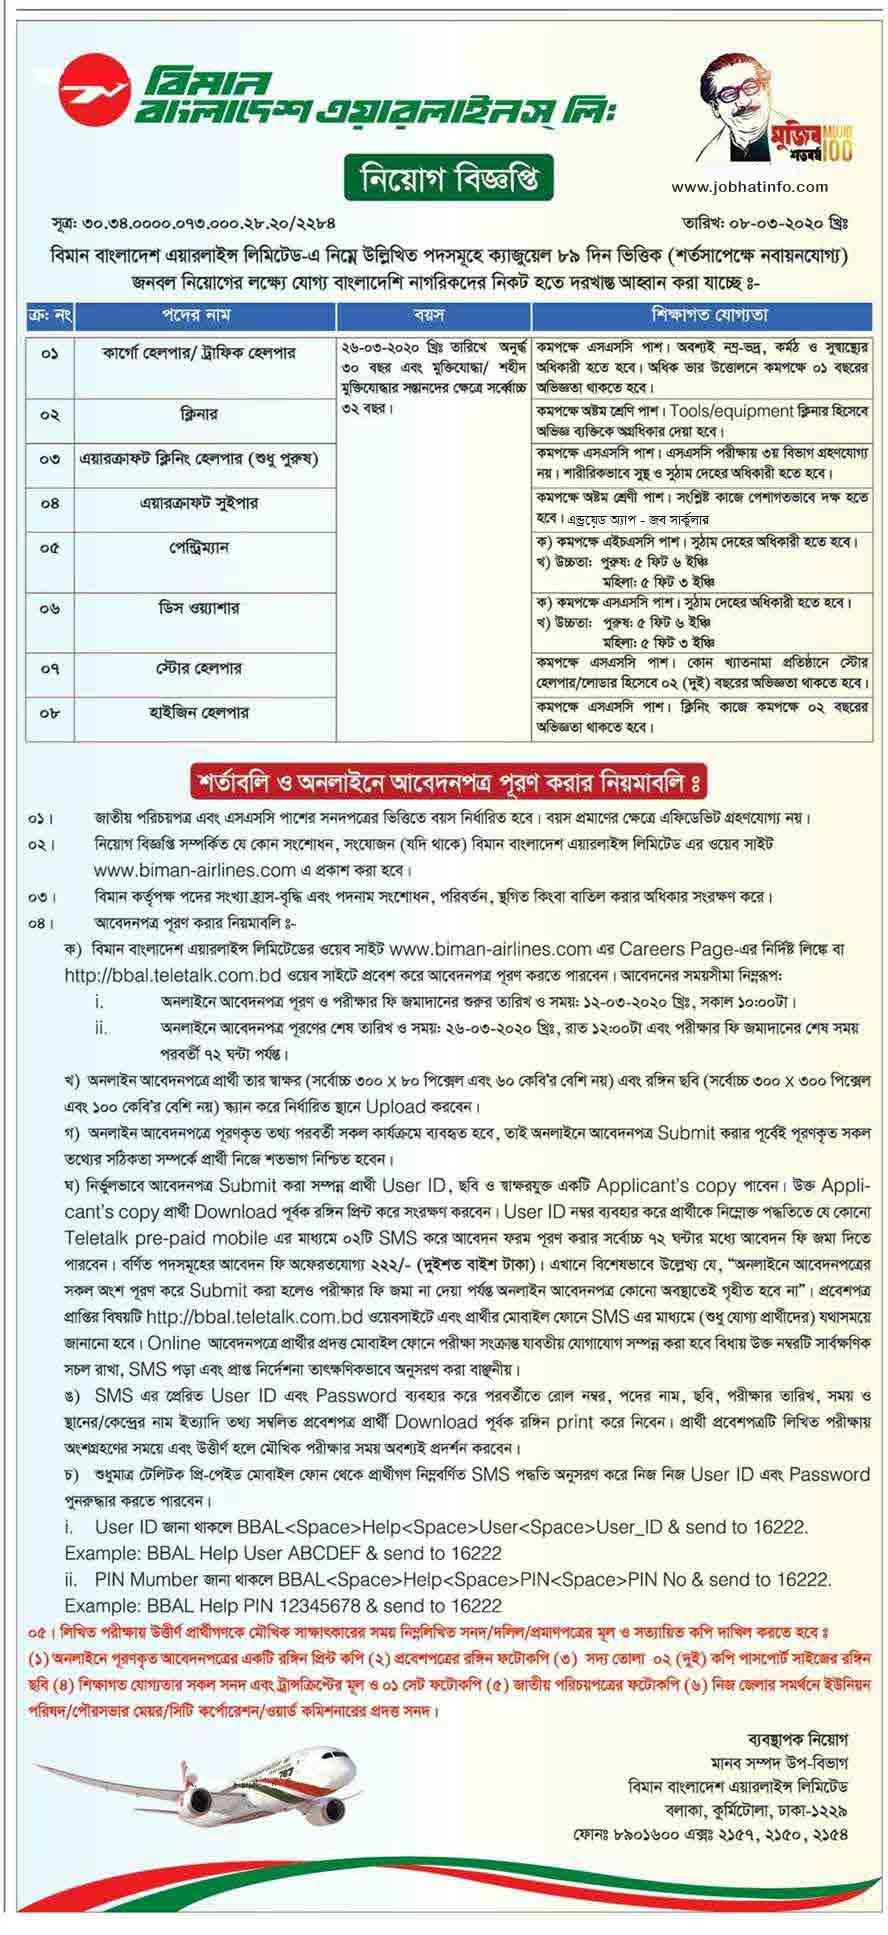 Biman Bangladesh Airlines Job Circular 2020 Apply teletalk.bd.com 1